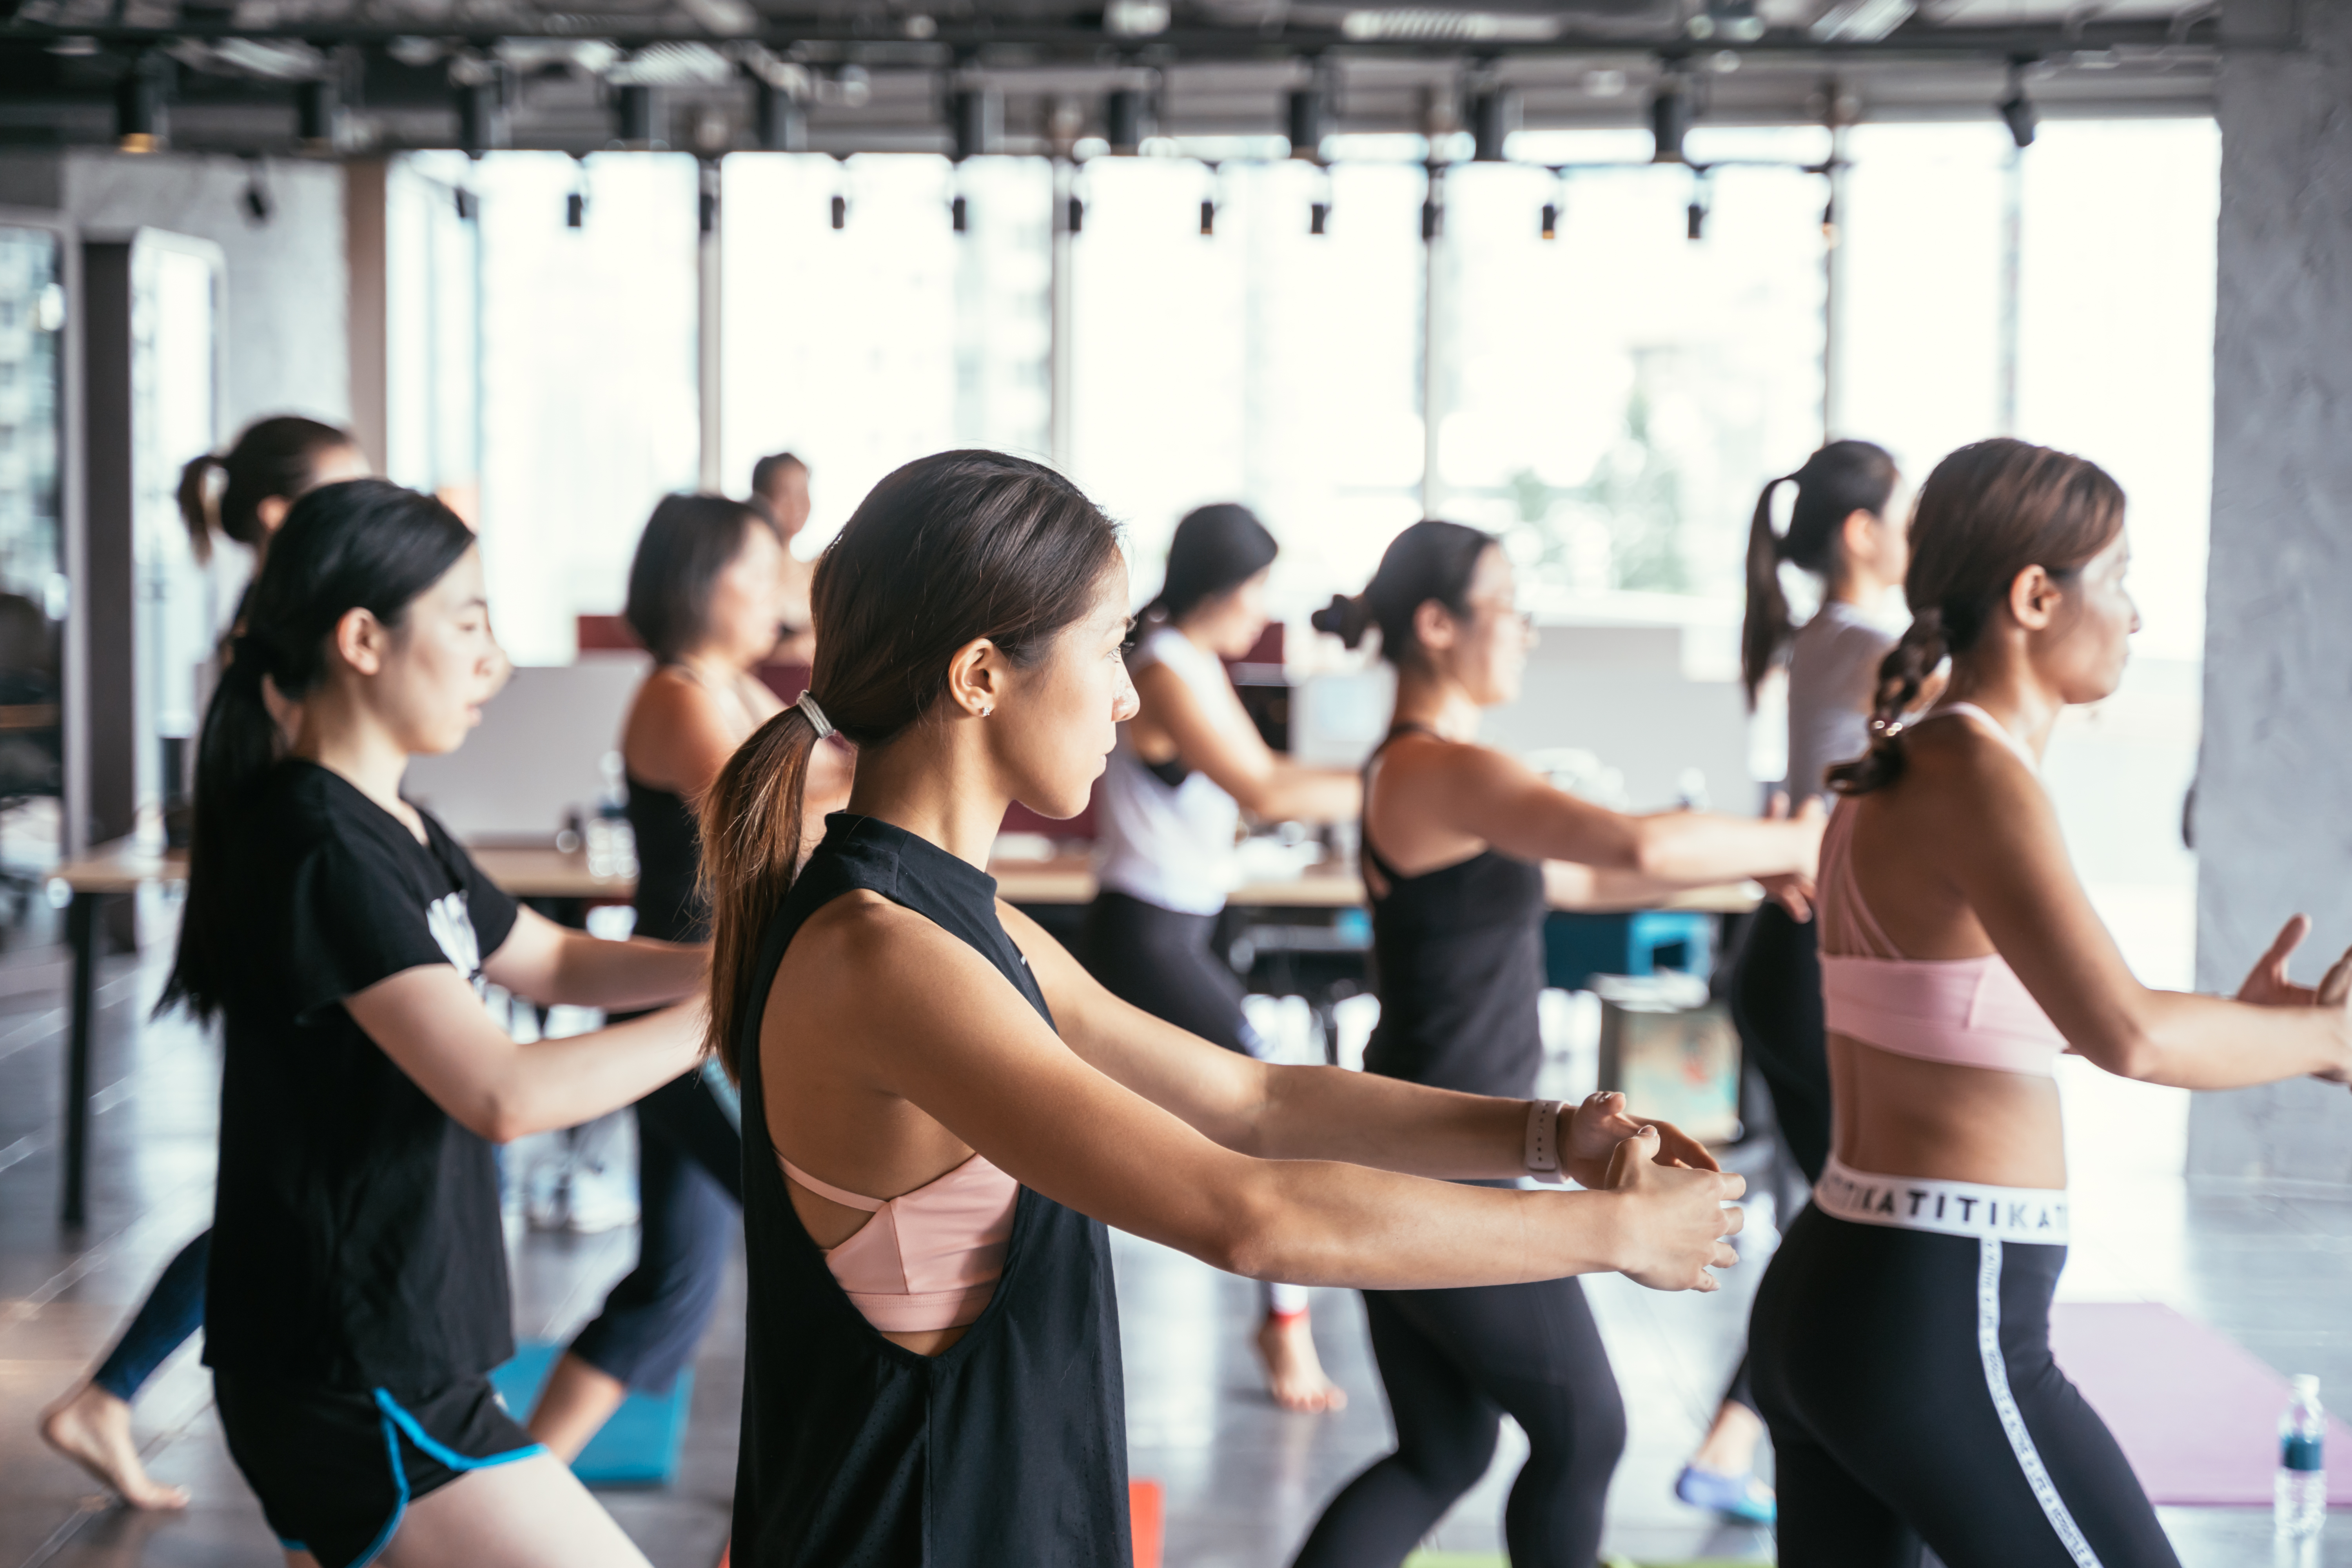 Celebrity-approved Fitness Trend! As Elegant as Ballet, as Dynamic as Yoga & Pilates - WELLNESS - K11